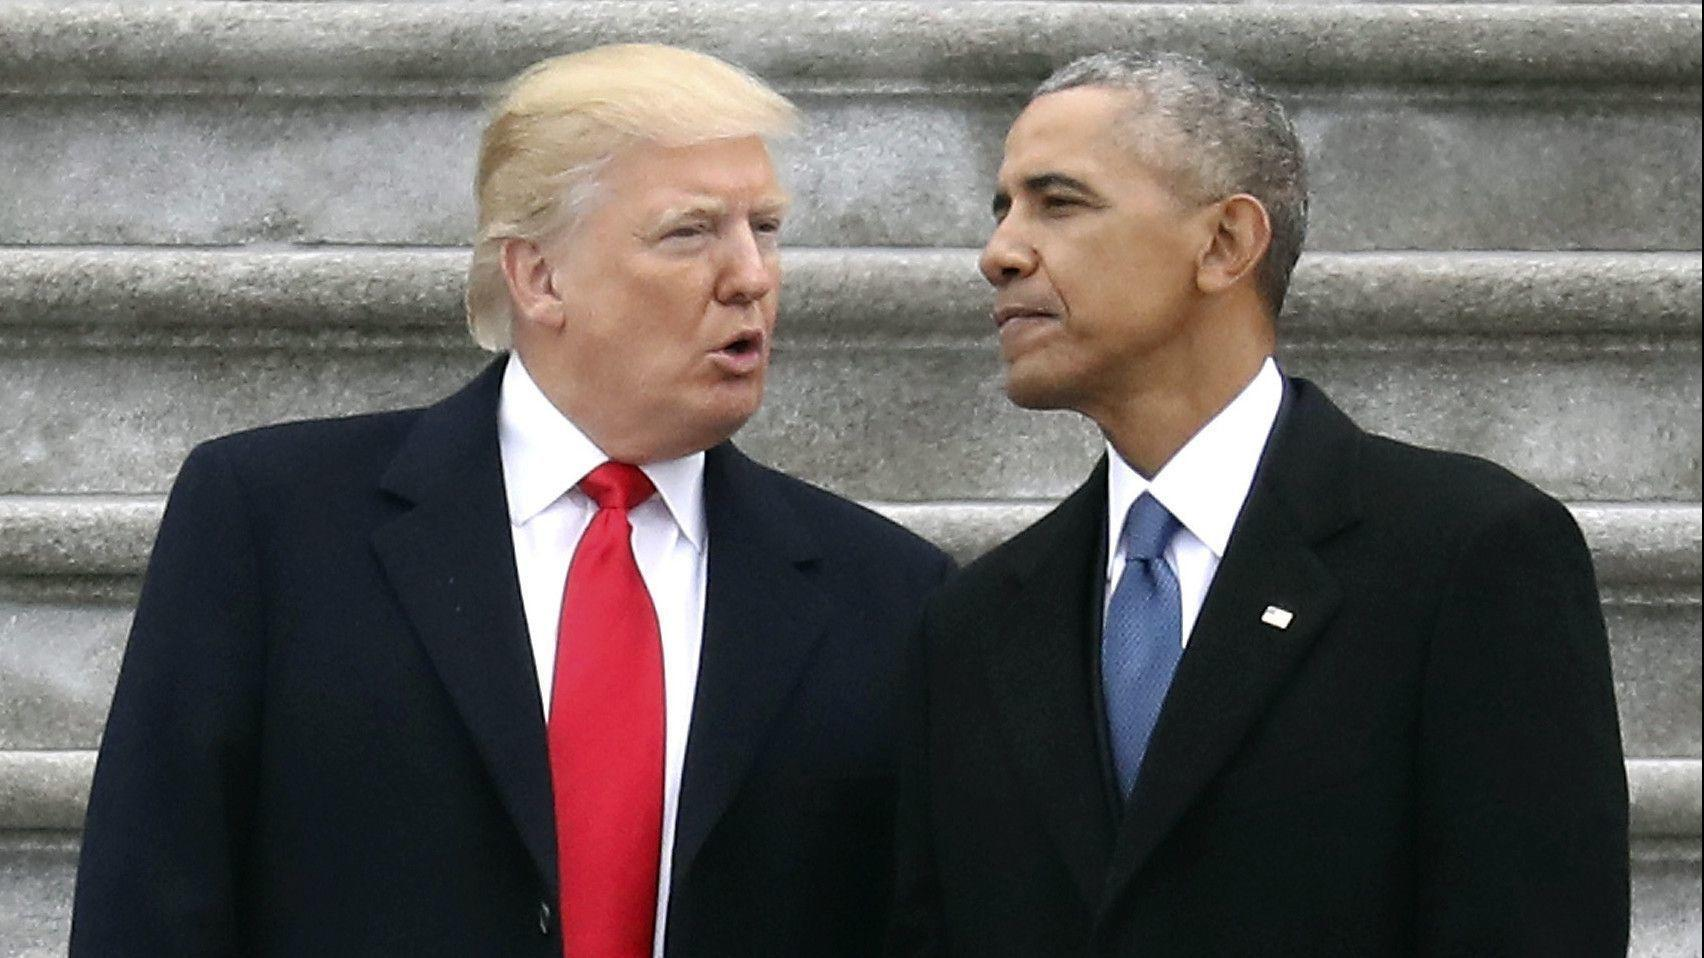 In the face of Trumps attacks Obama and other expresidents remain silent